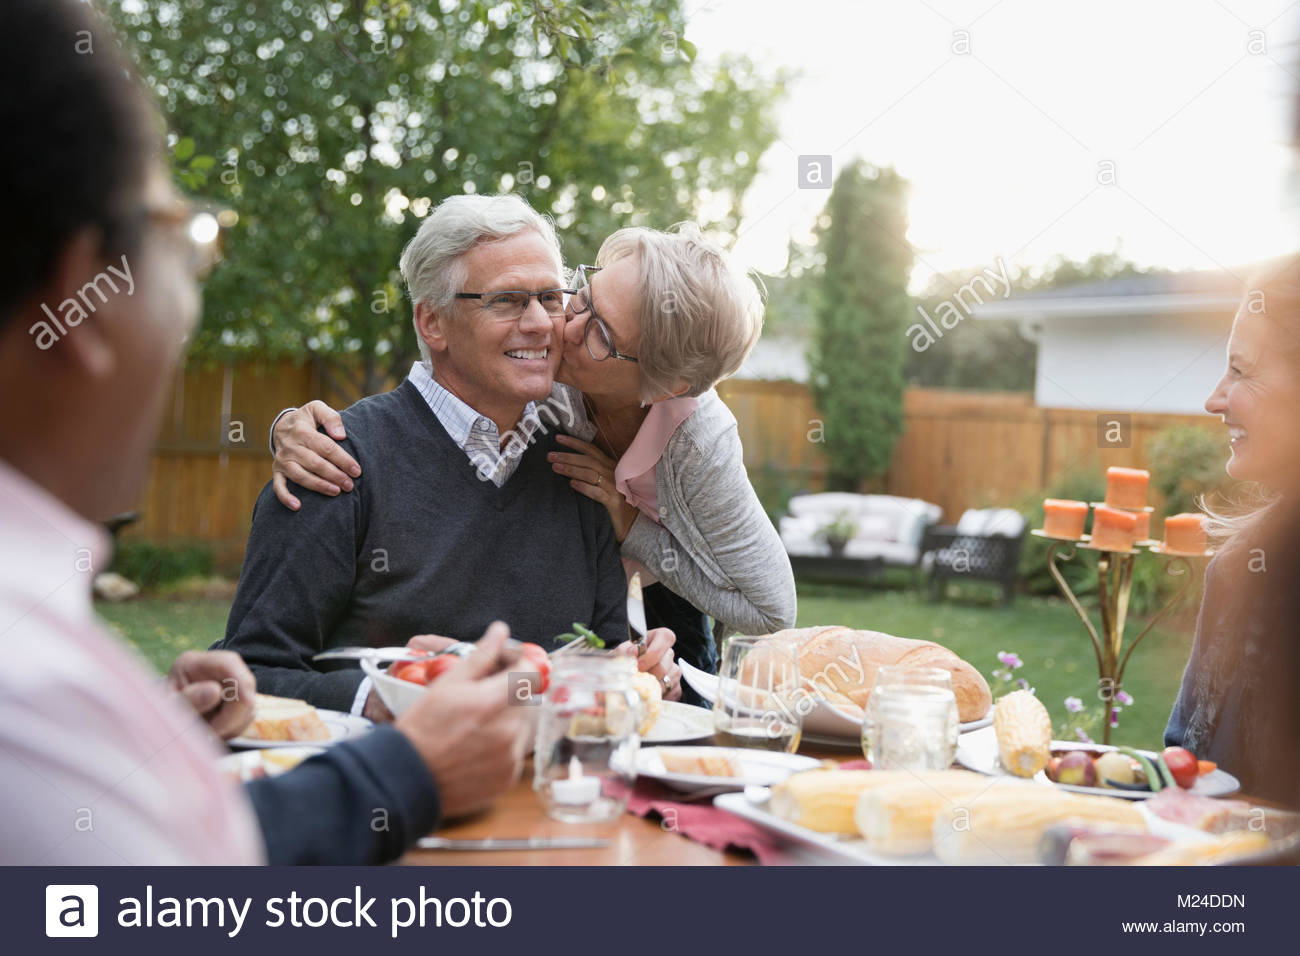 Affectionate senior wife kissing husband on cheek at garden party lunch patio table - Stock Image